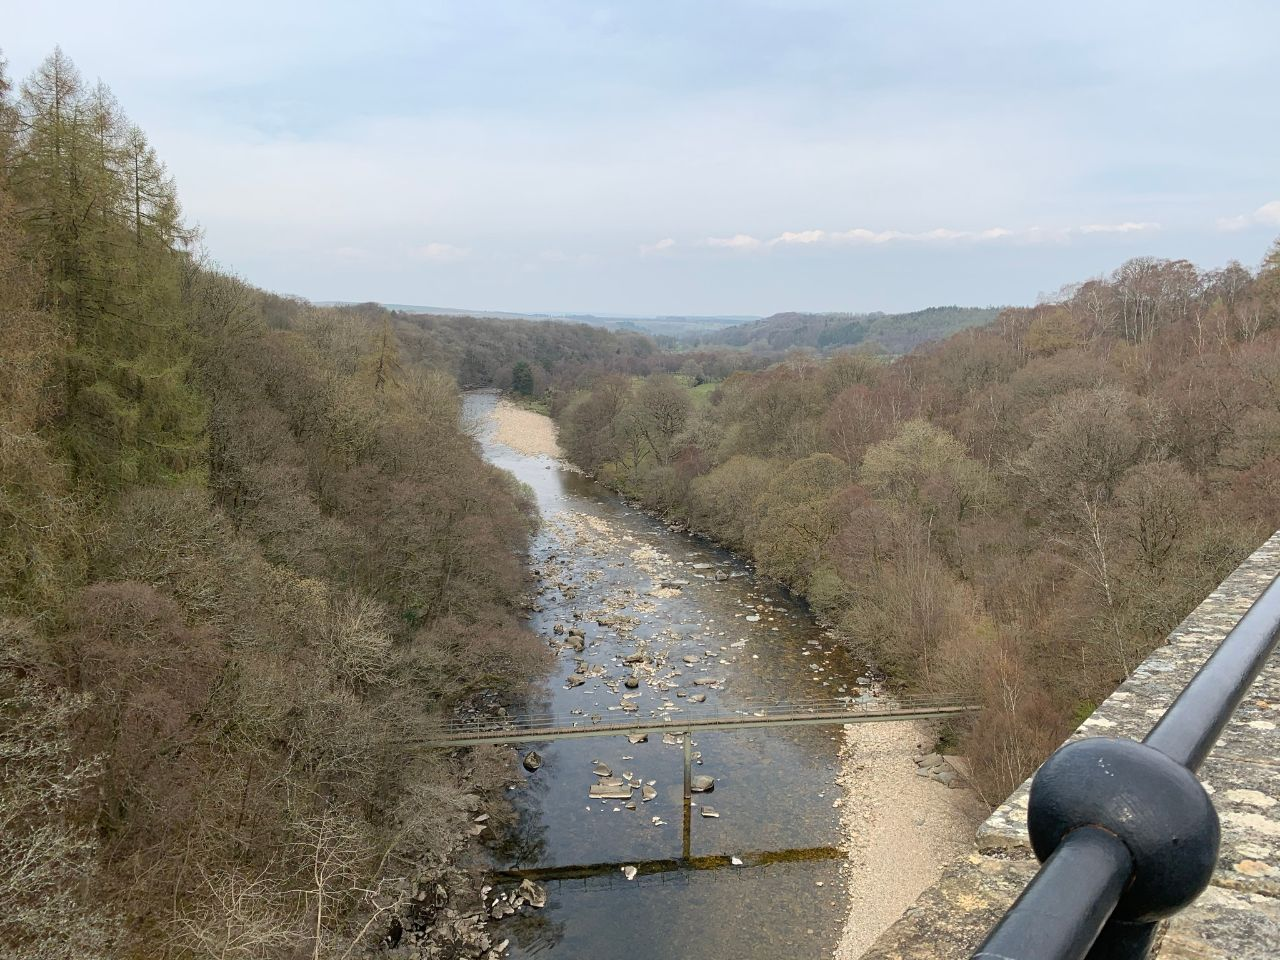 View of South Tyne river from Lambley viaduct